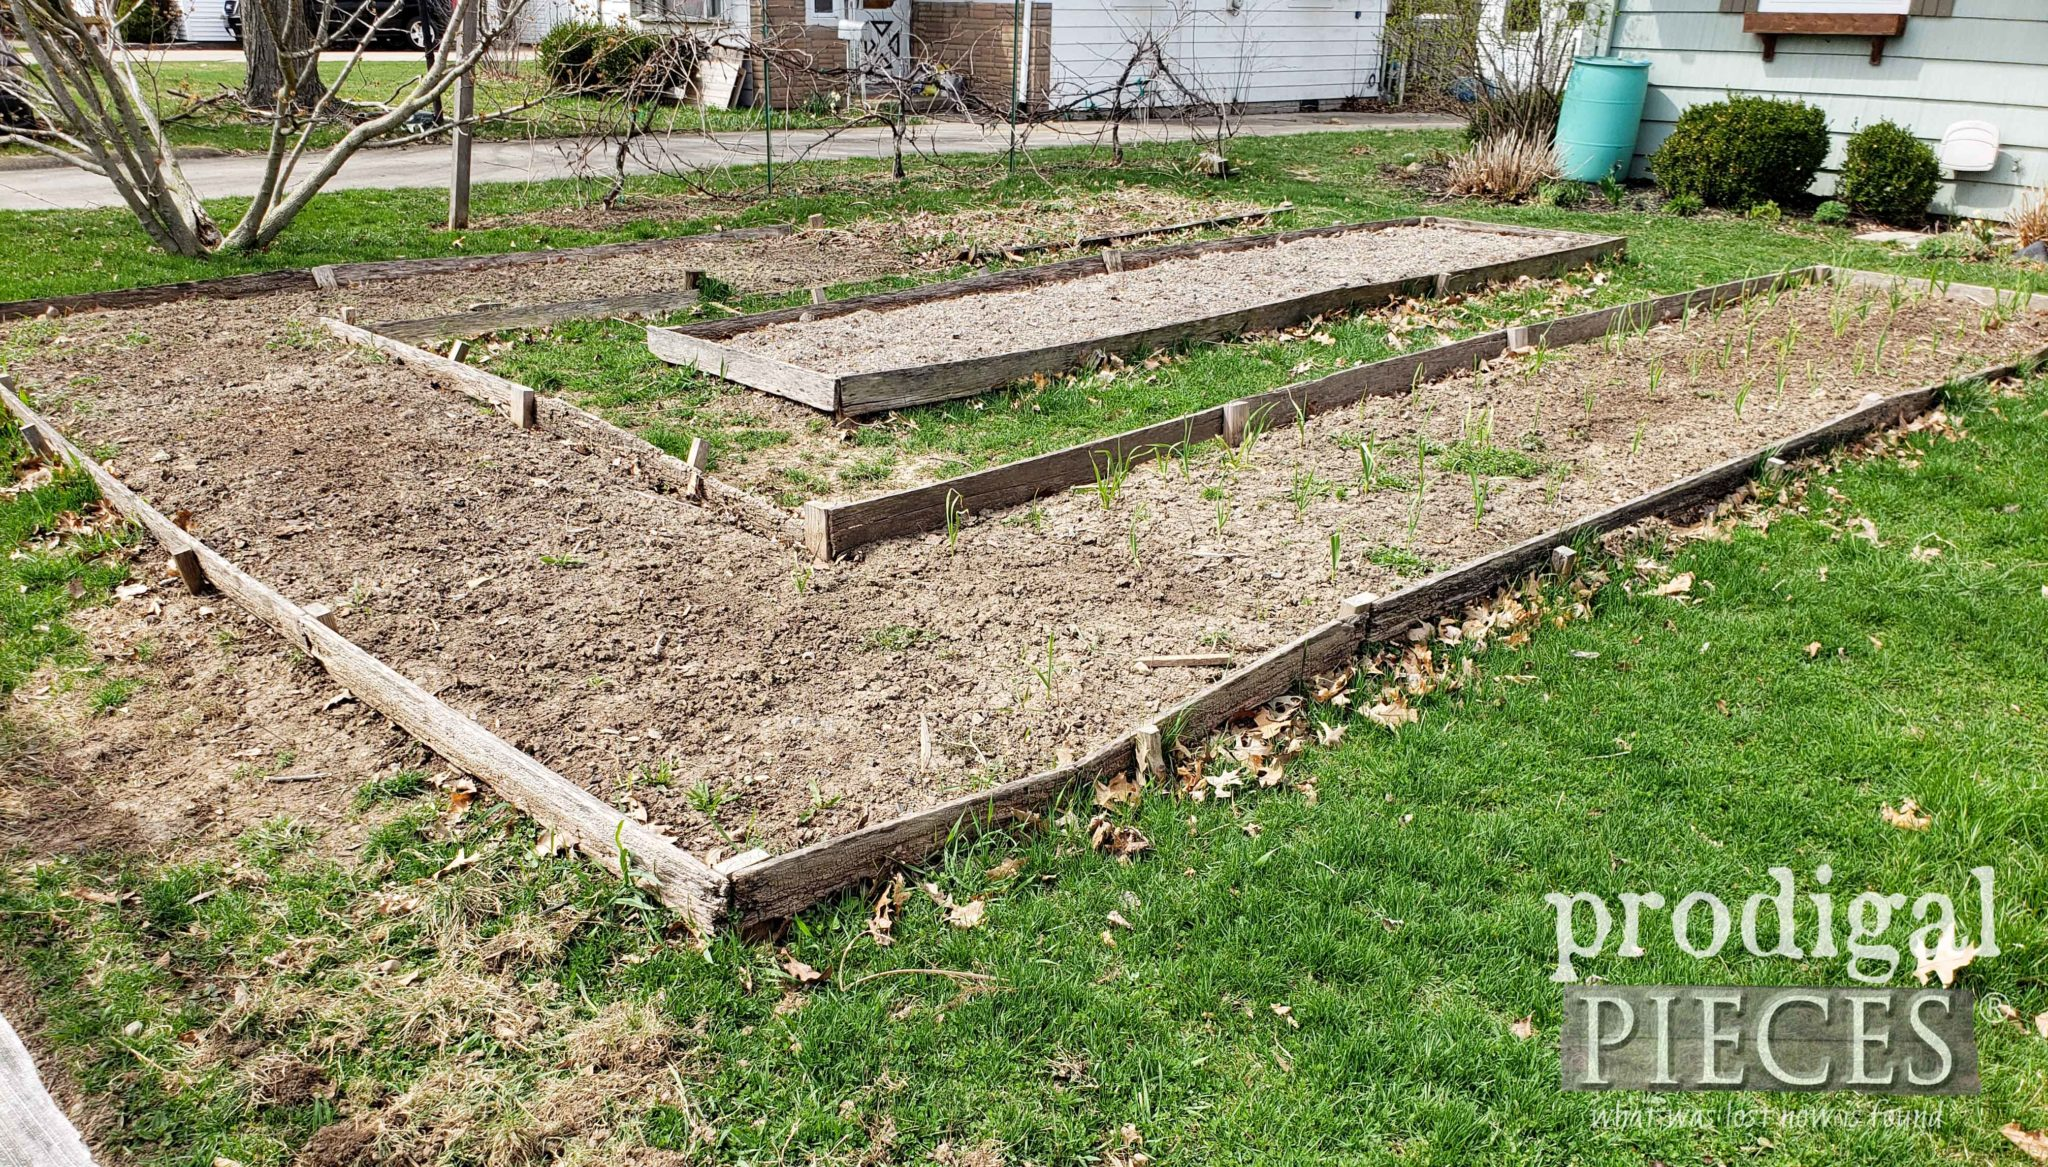 DIY Raised Garden Beds Before Rebuilding | prodigalpieces.com